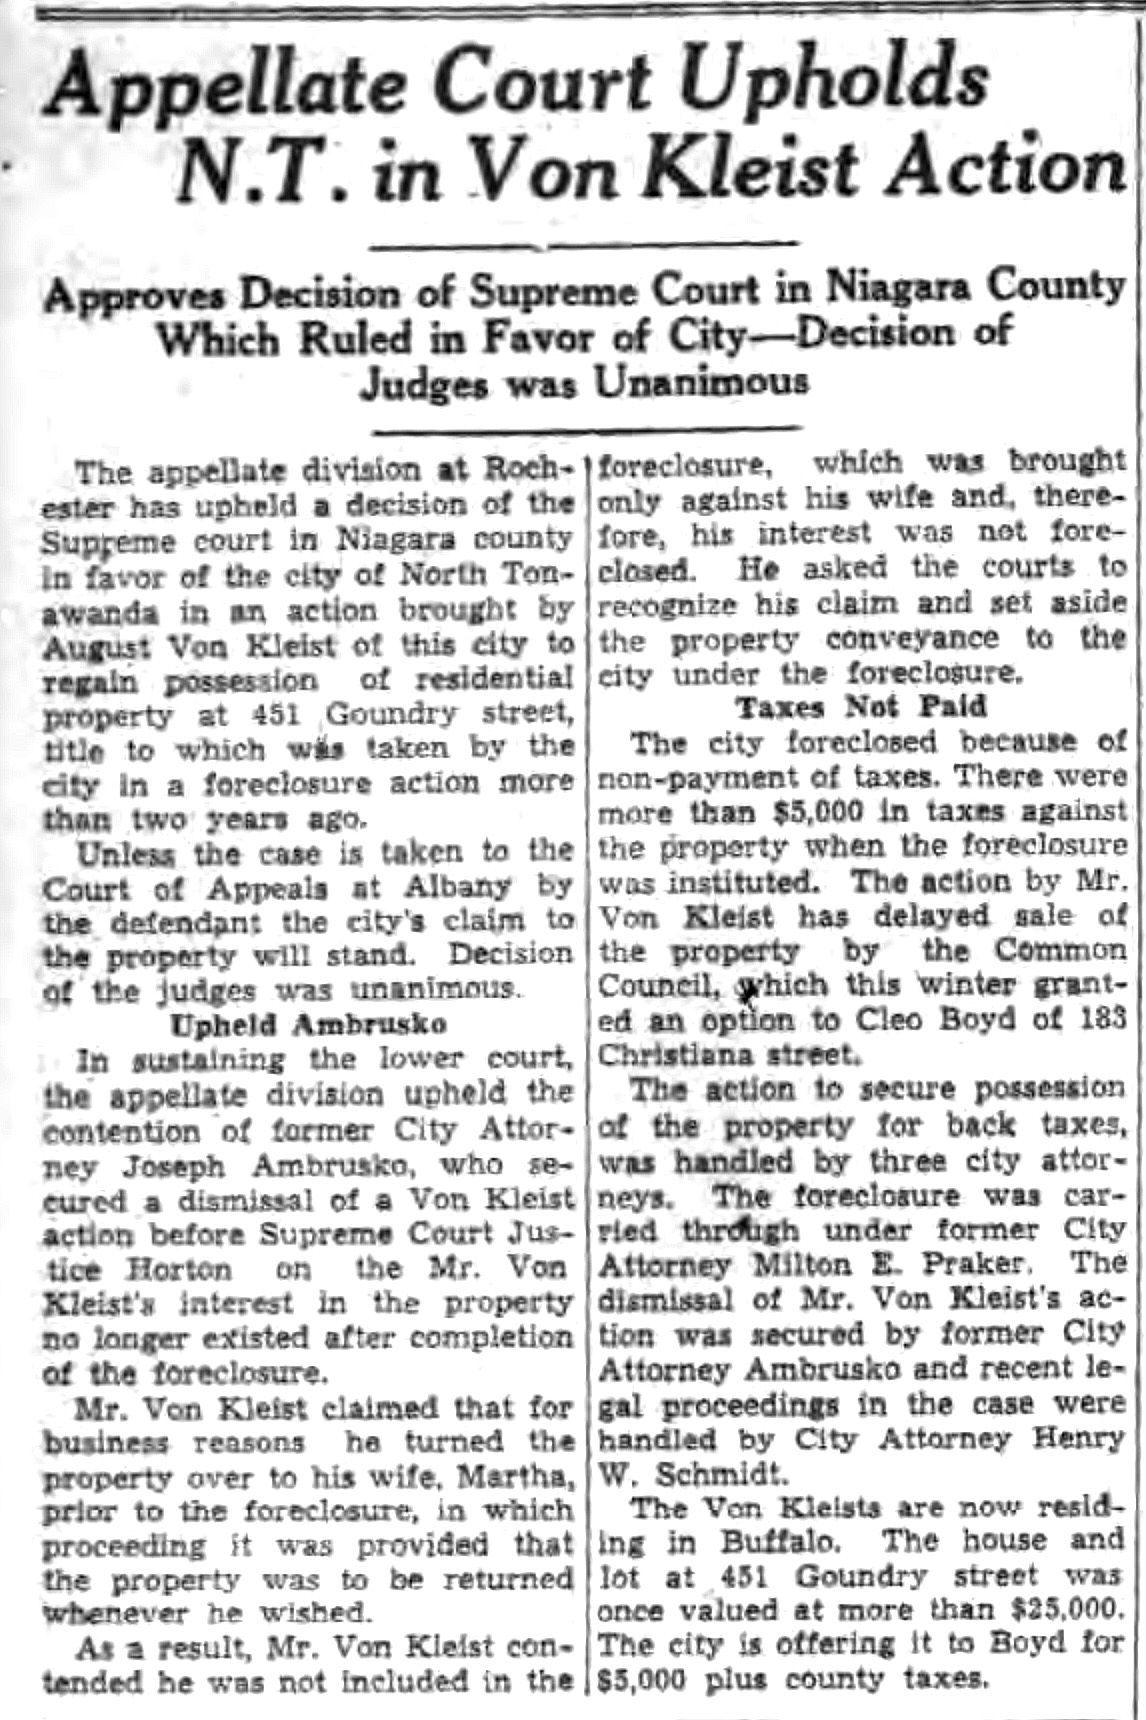 Appellate Court Upholds in NT in Von Kleist Action, article (Tonawanda News, 1936-05-15).jpg